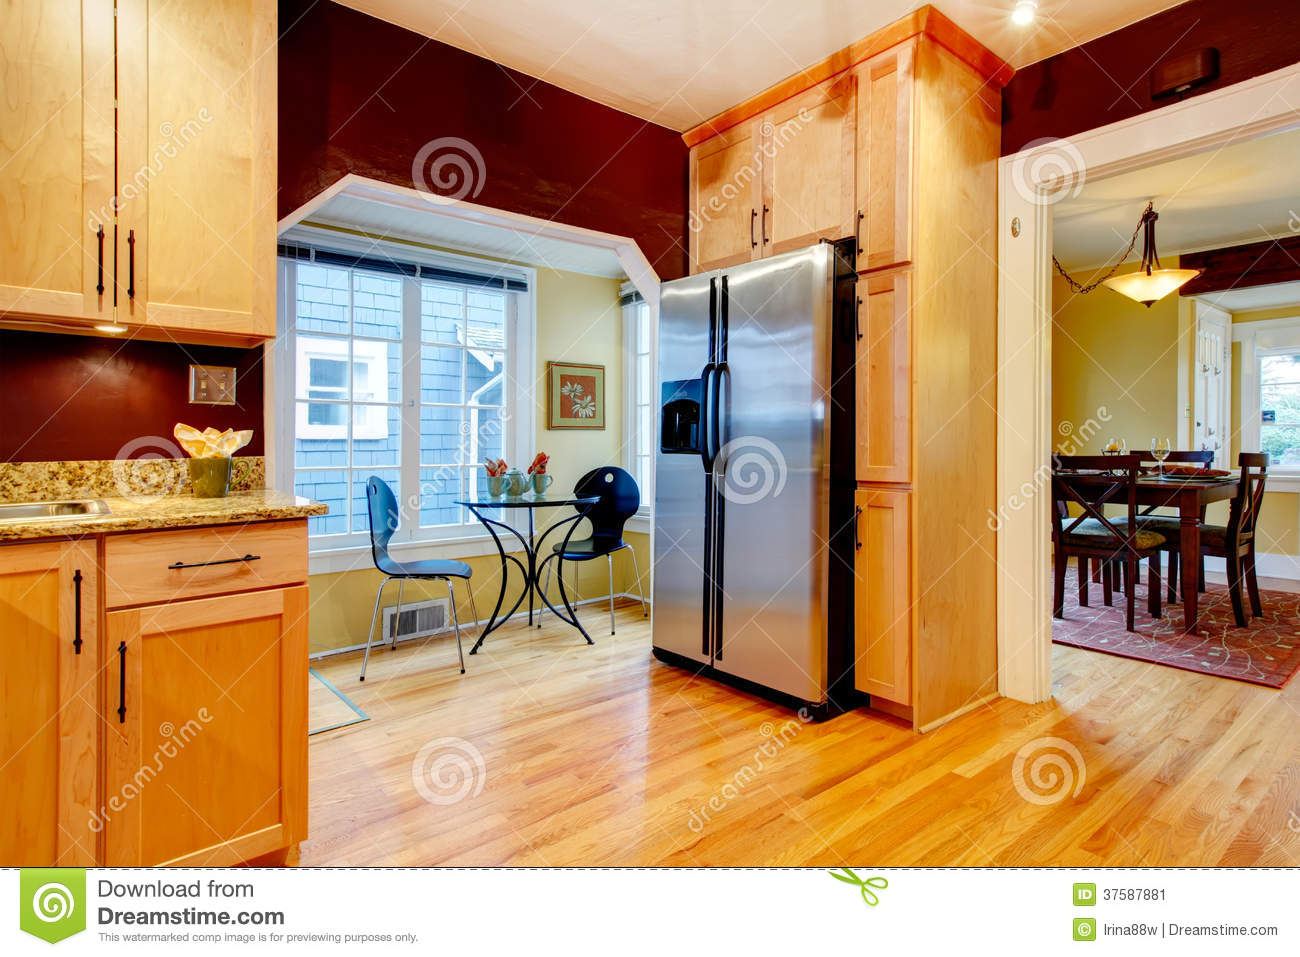 Perfect Burgundy Kitchen Room With Dining Area Stock Image